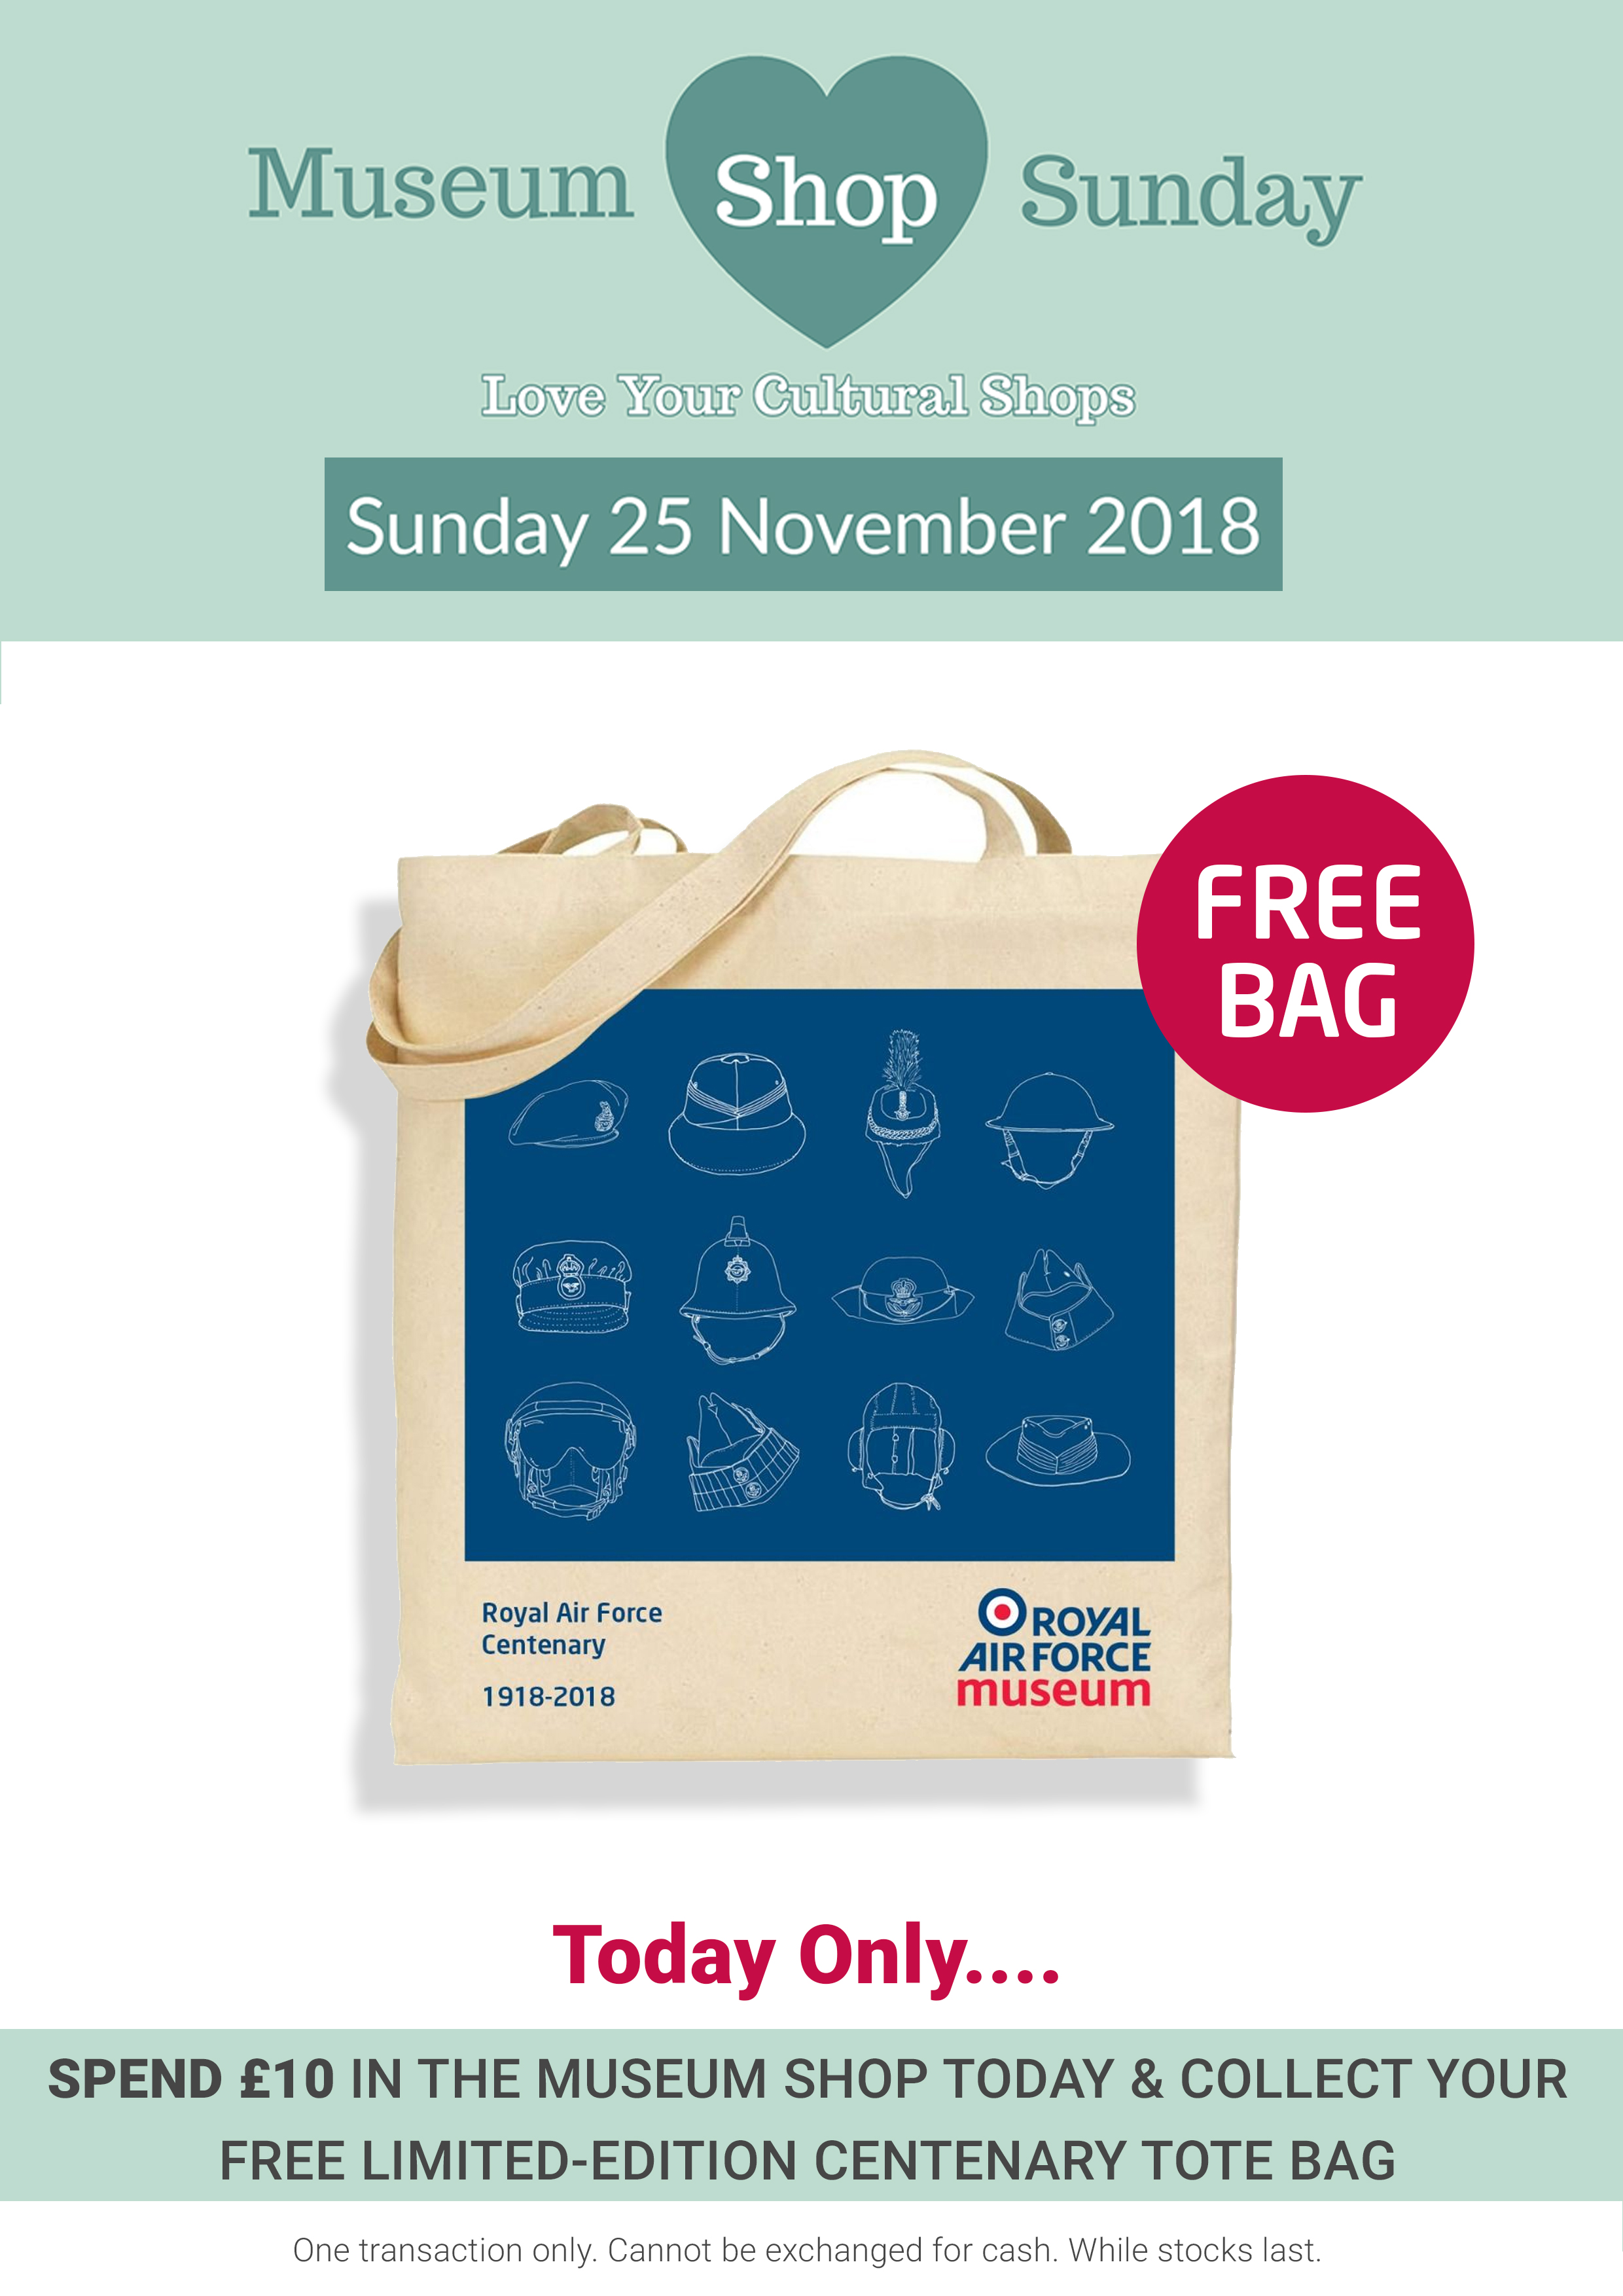 Our Museum Shop Sunday Offer at both London and Cosford